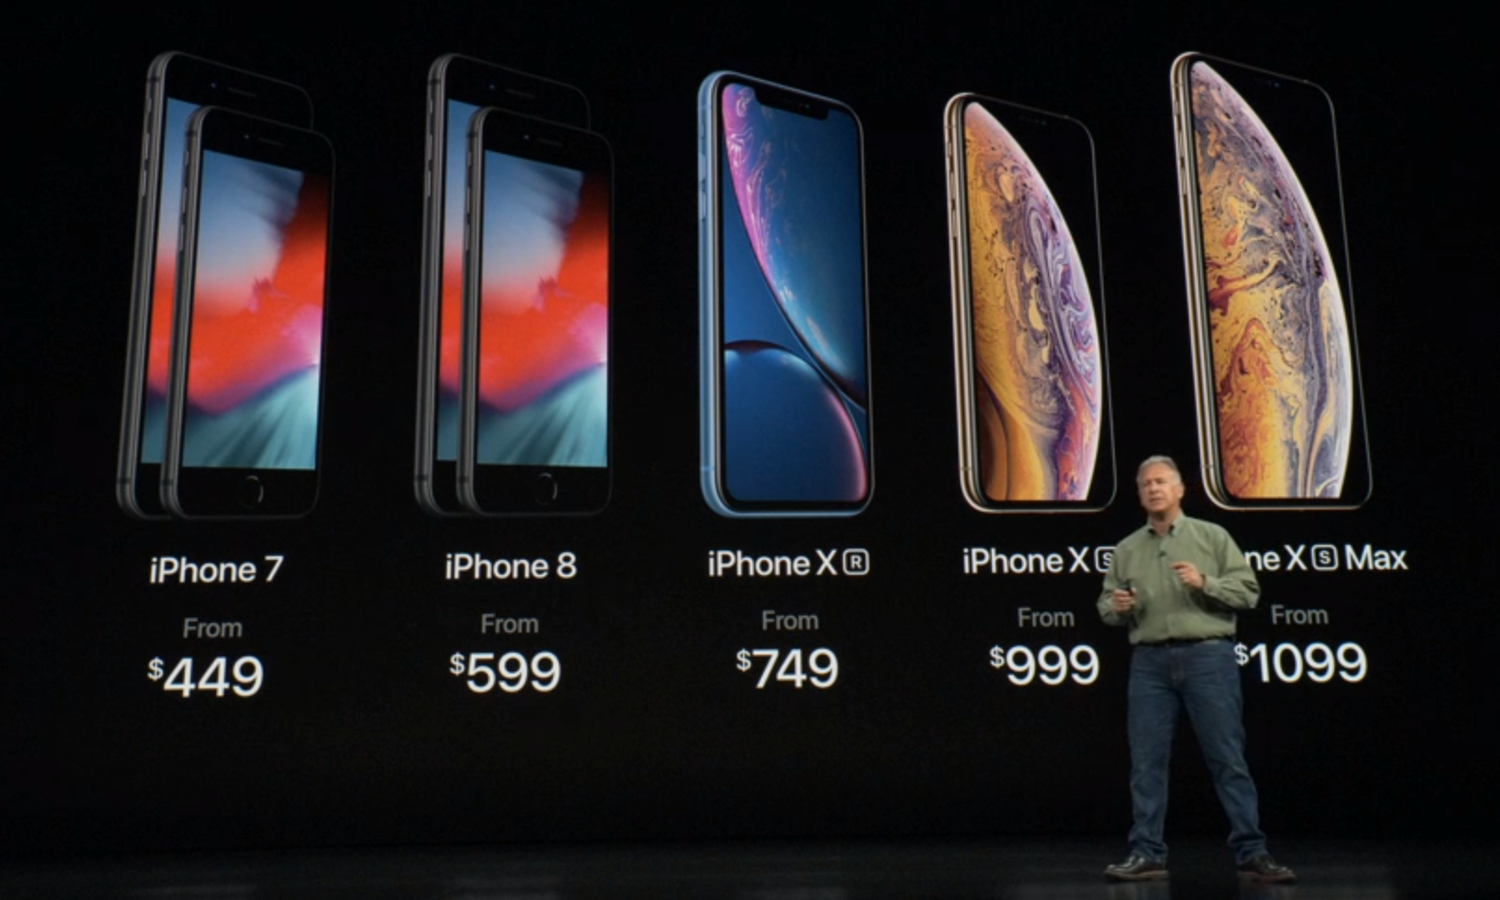 Apple Announces iPhone XS, XS Max, XR, and Apple Watch Series 4